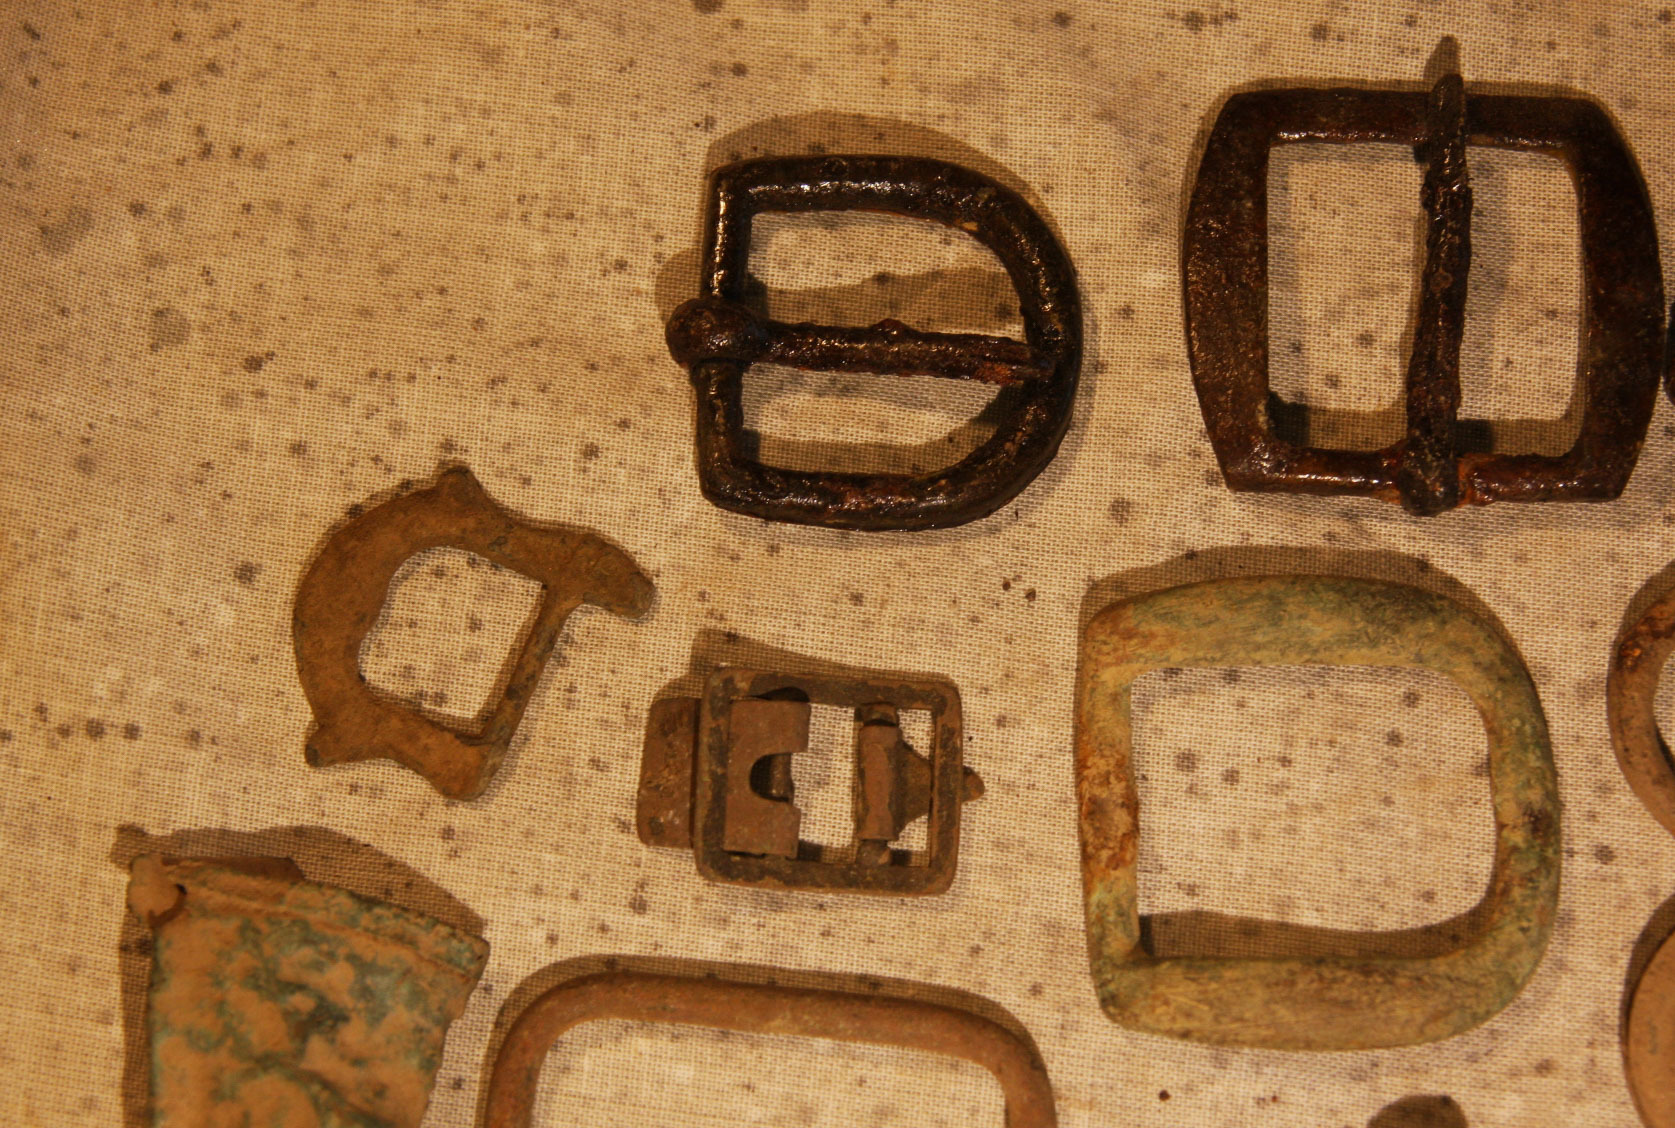 JUST ADDED ON 5/22 - CENTREVILLE, VIRGINIA / BULL RUN AREA - 14 Artifacts - Mostly Brass & Iron Buckles -  with Original Typed Label